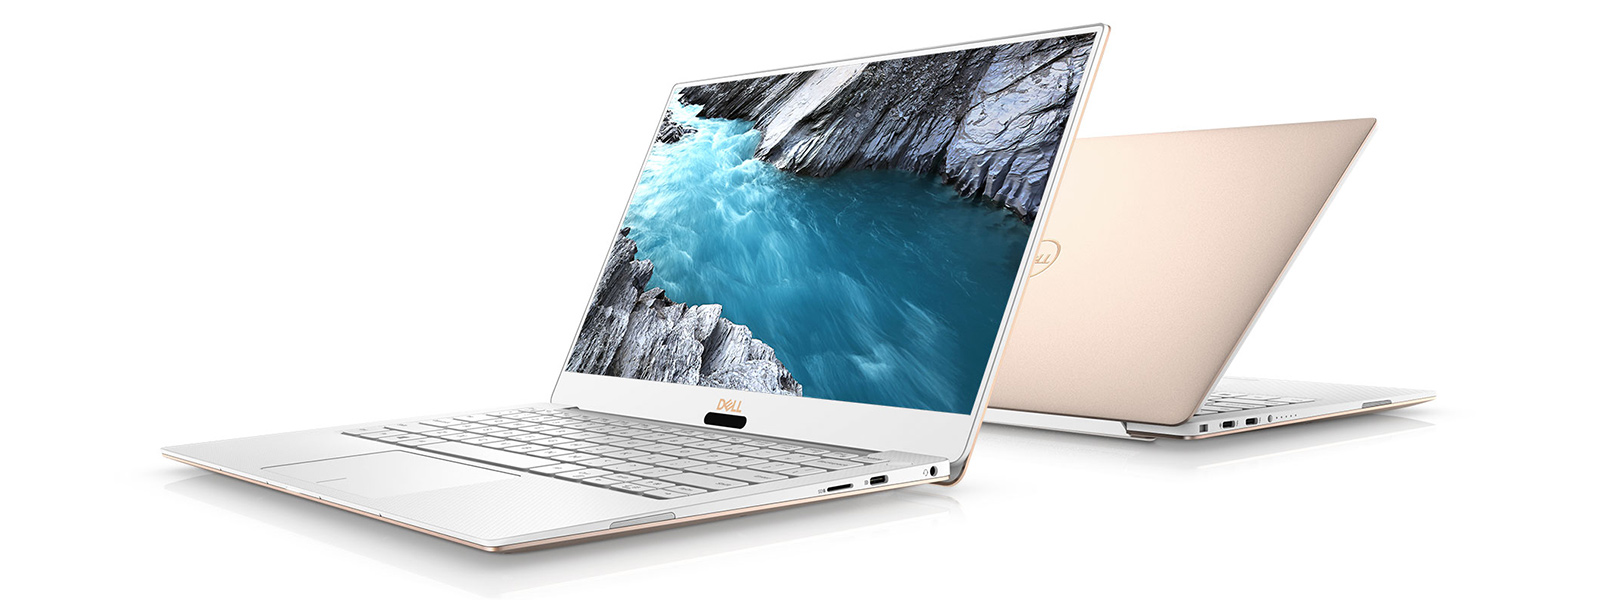 Dell XPS 13 ノート PC